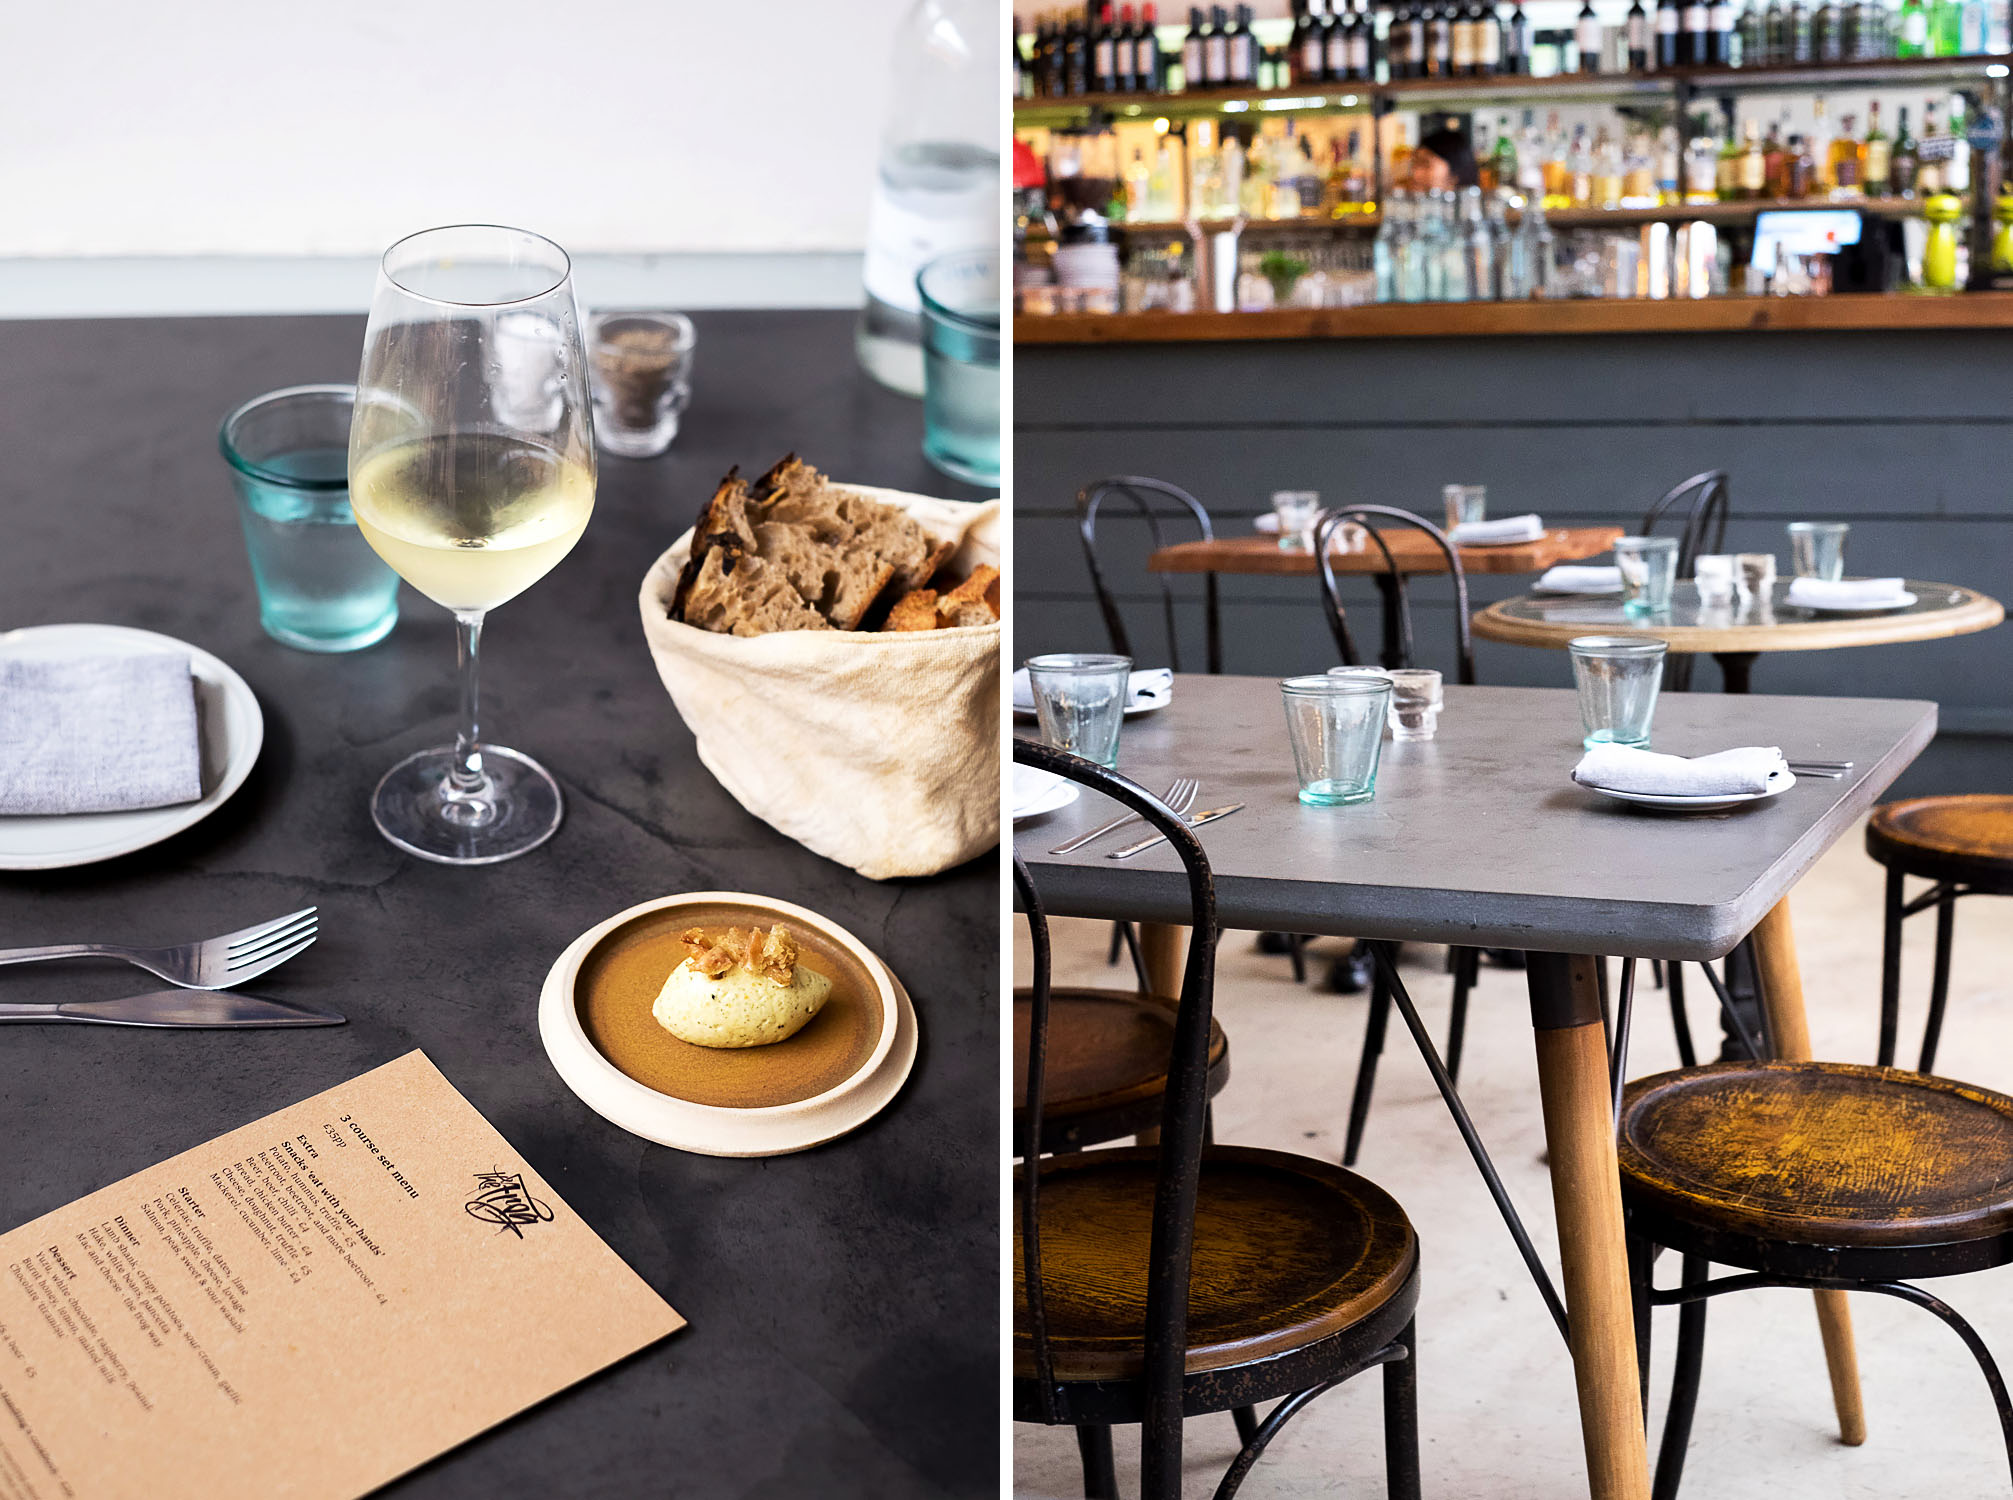 Fine Dining Set Menu Lunch at The Frog E1 in Spitalfields, London